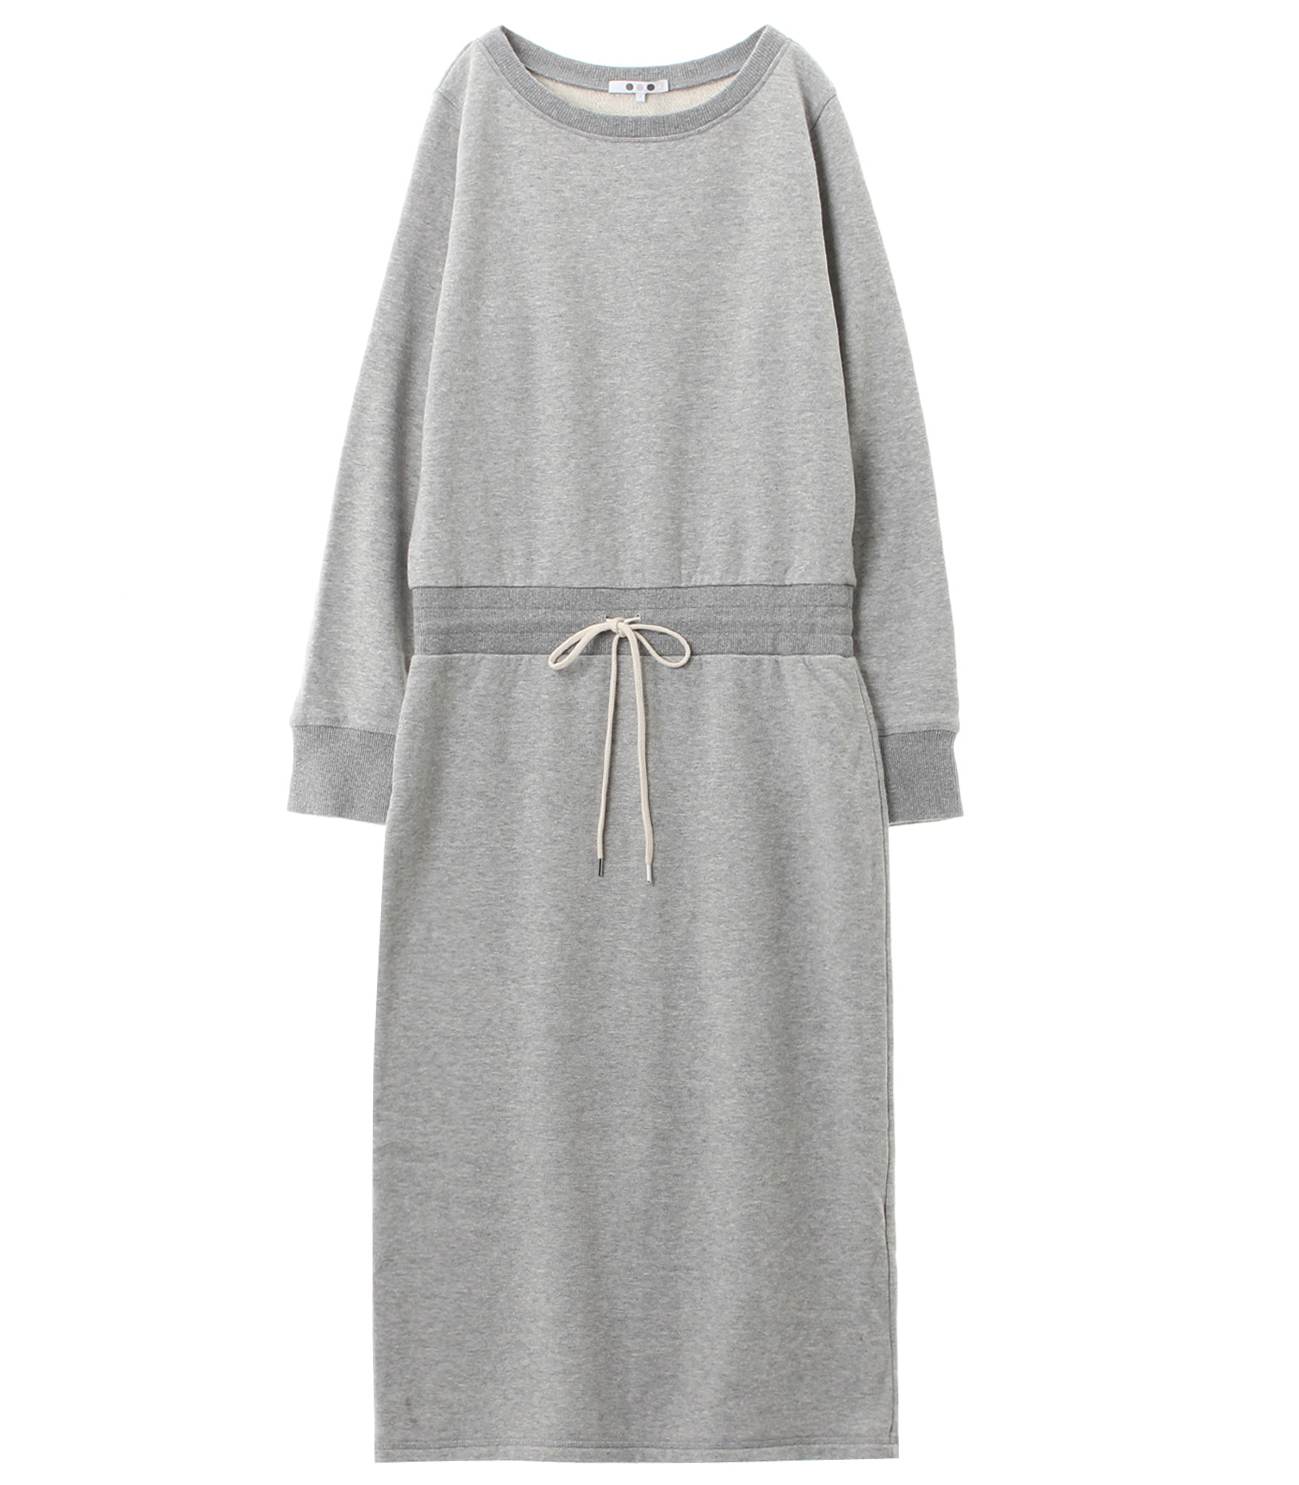 sueded terry dress 詳細画像 granite 1